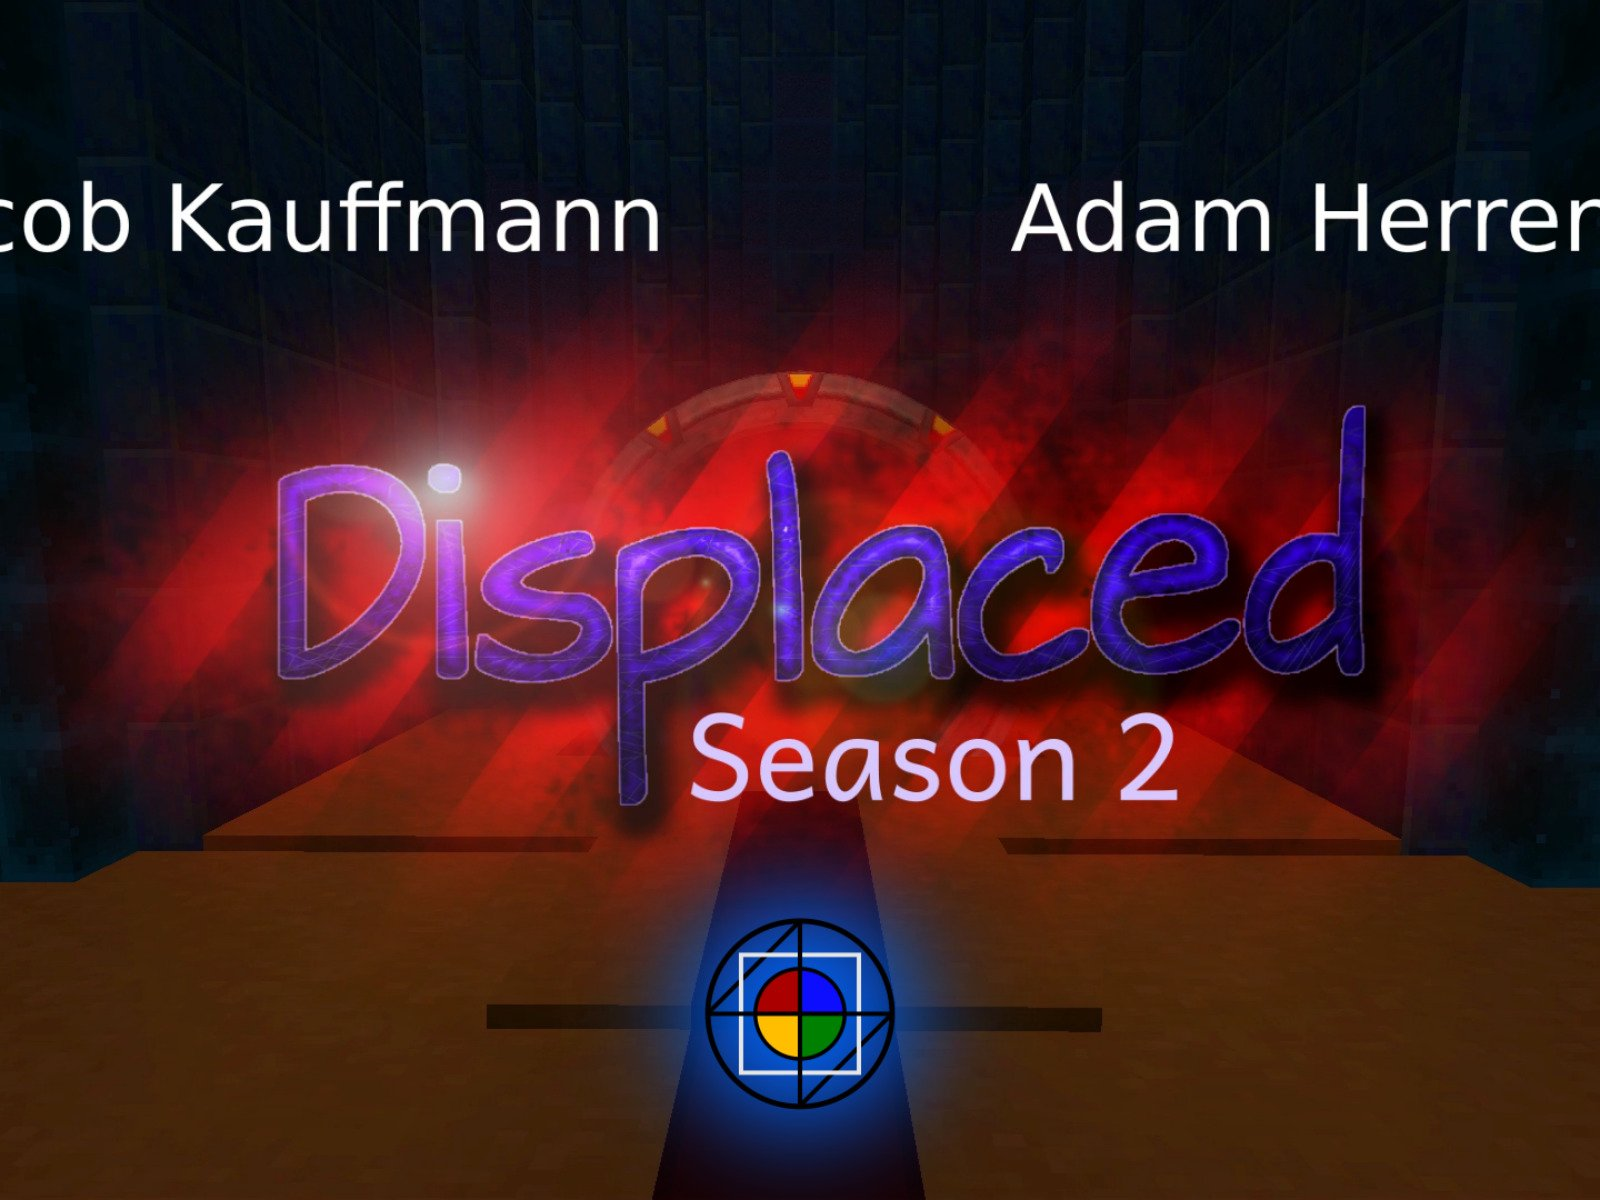 Clip: Displaced